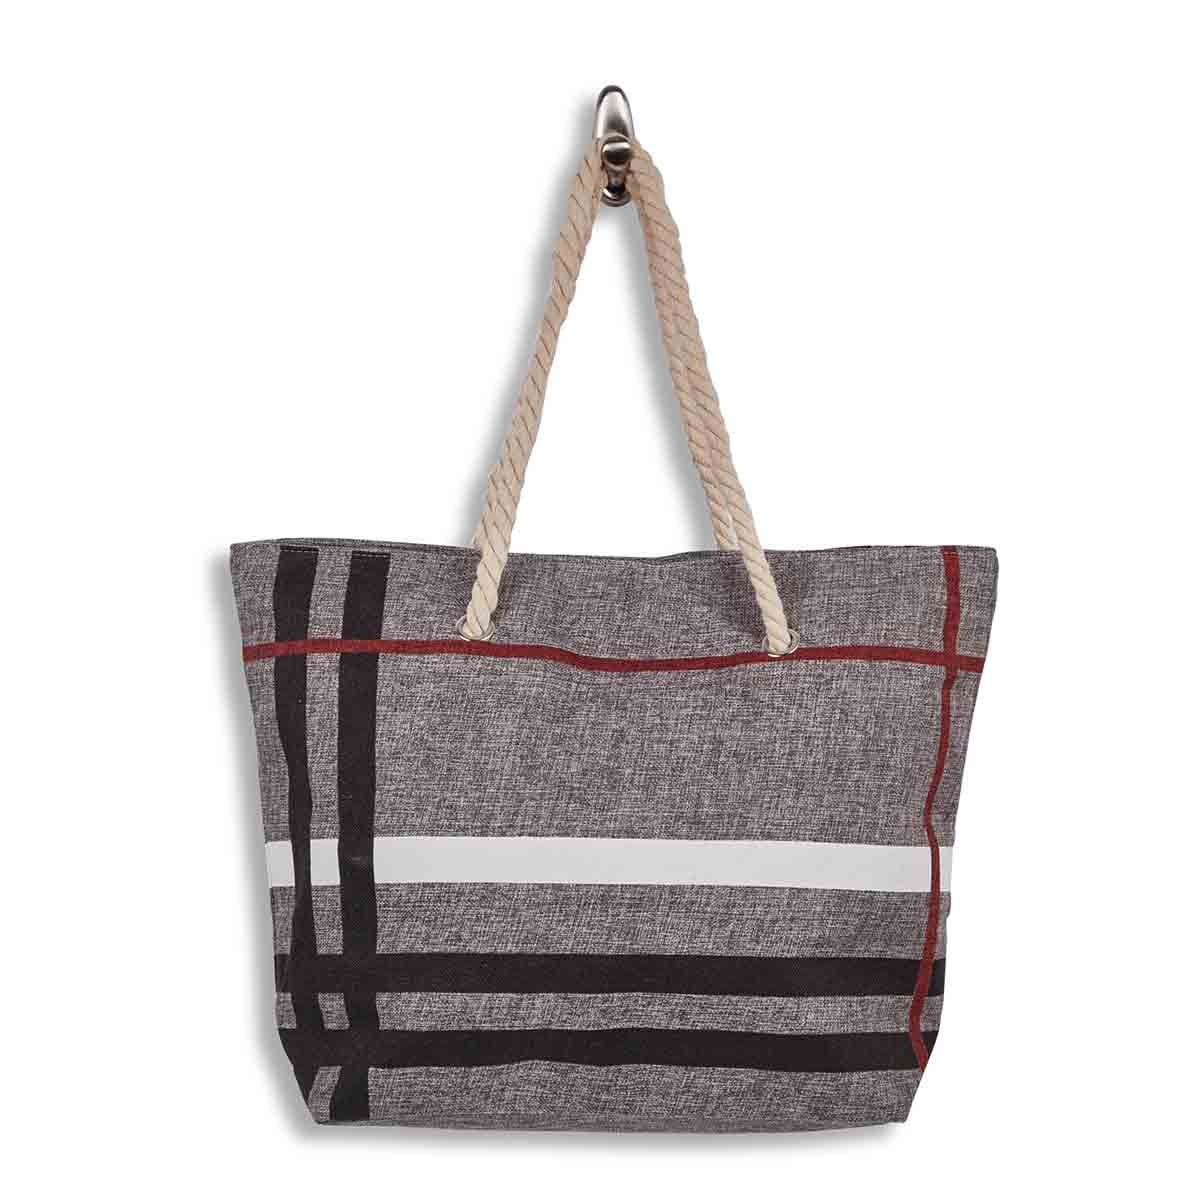 Lds grey large canvas tote bag